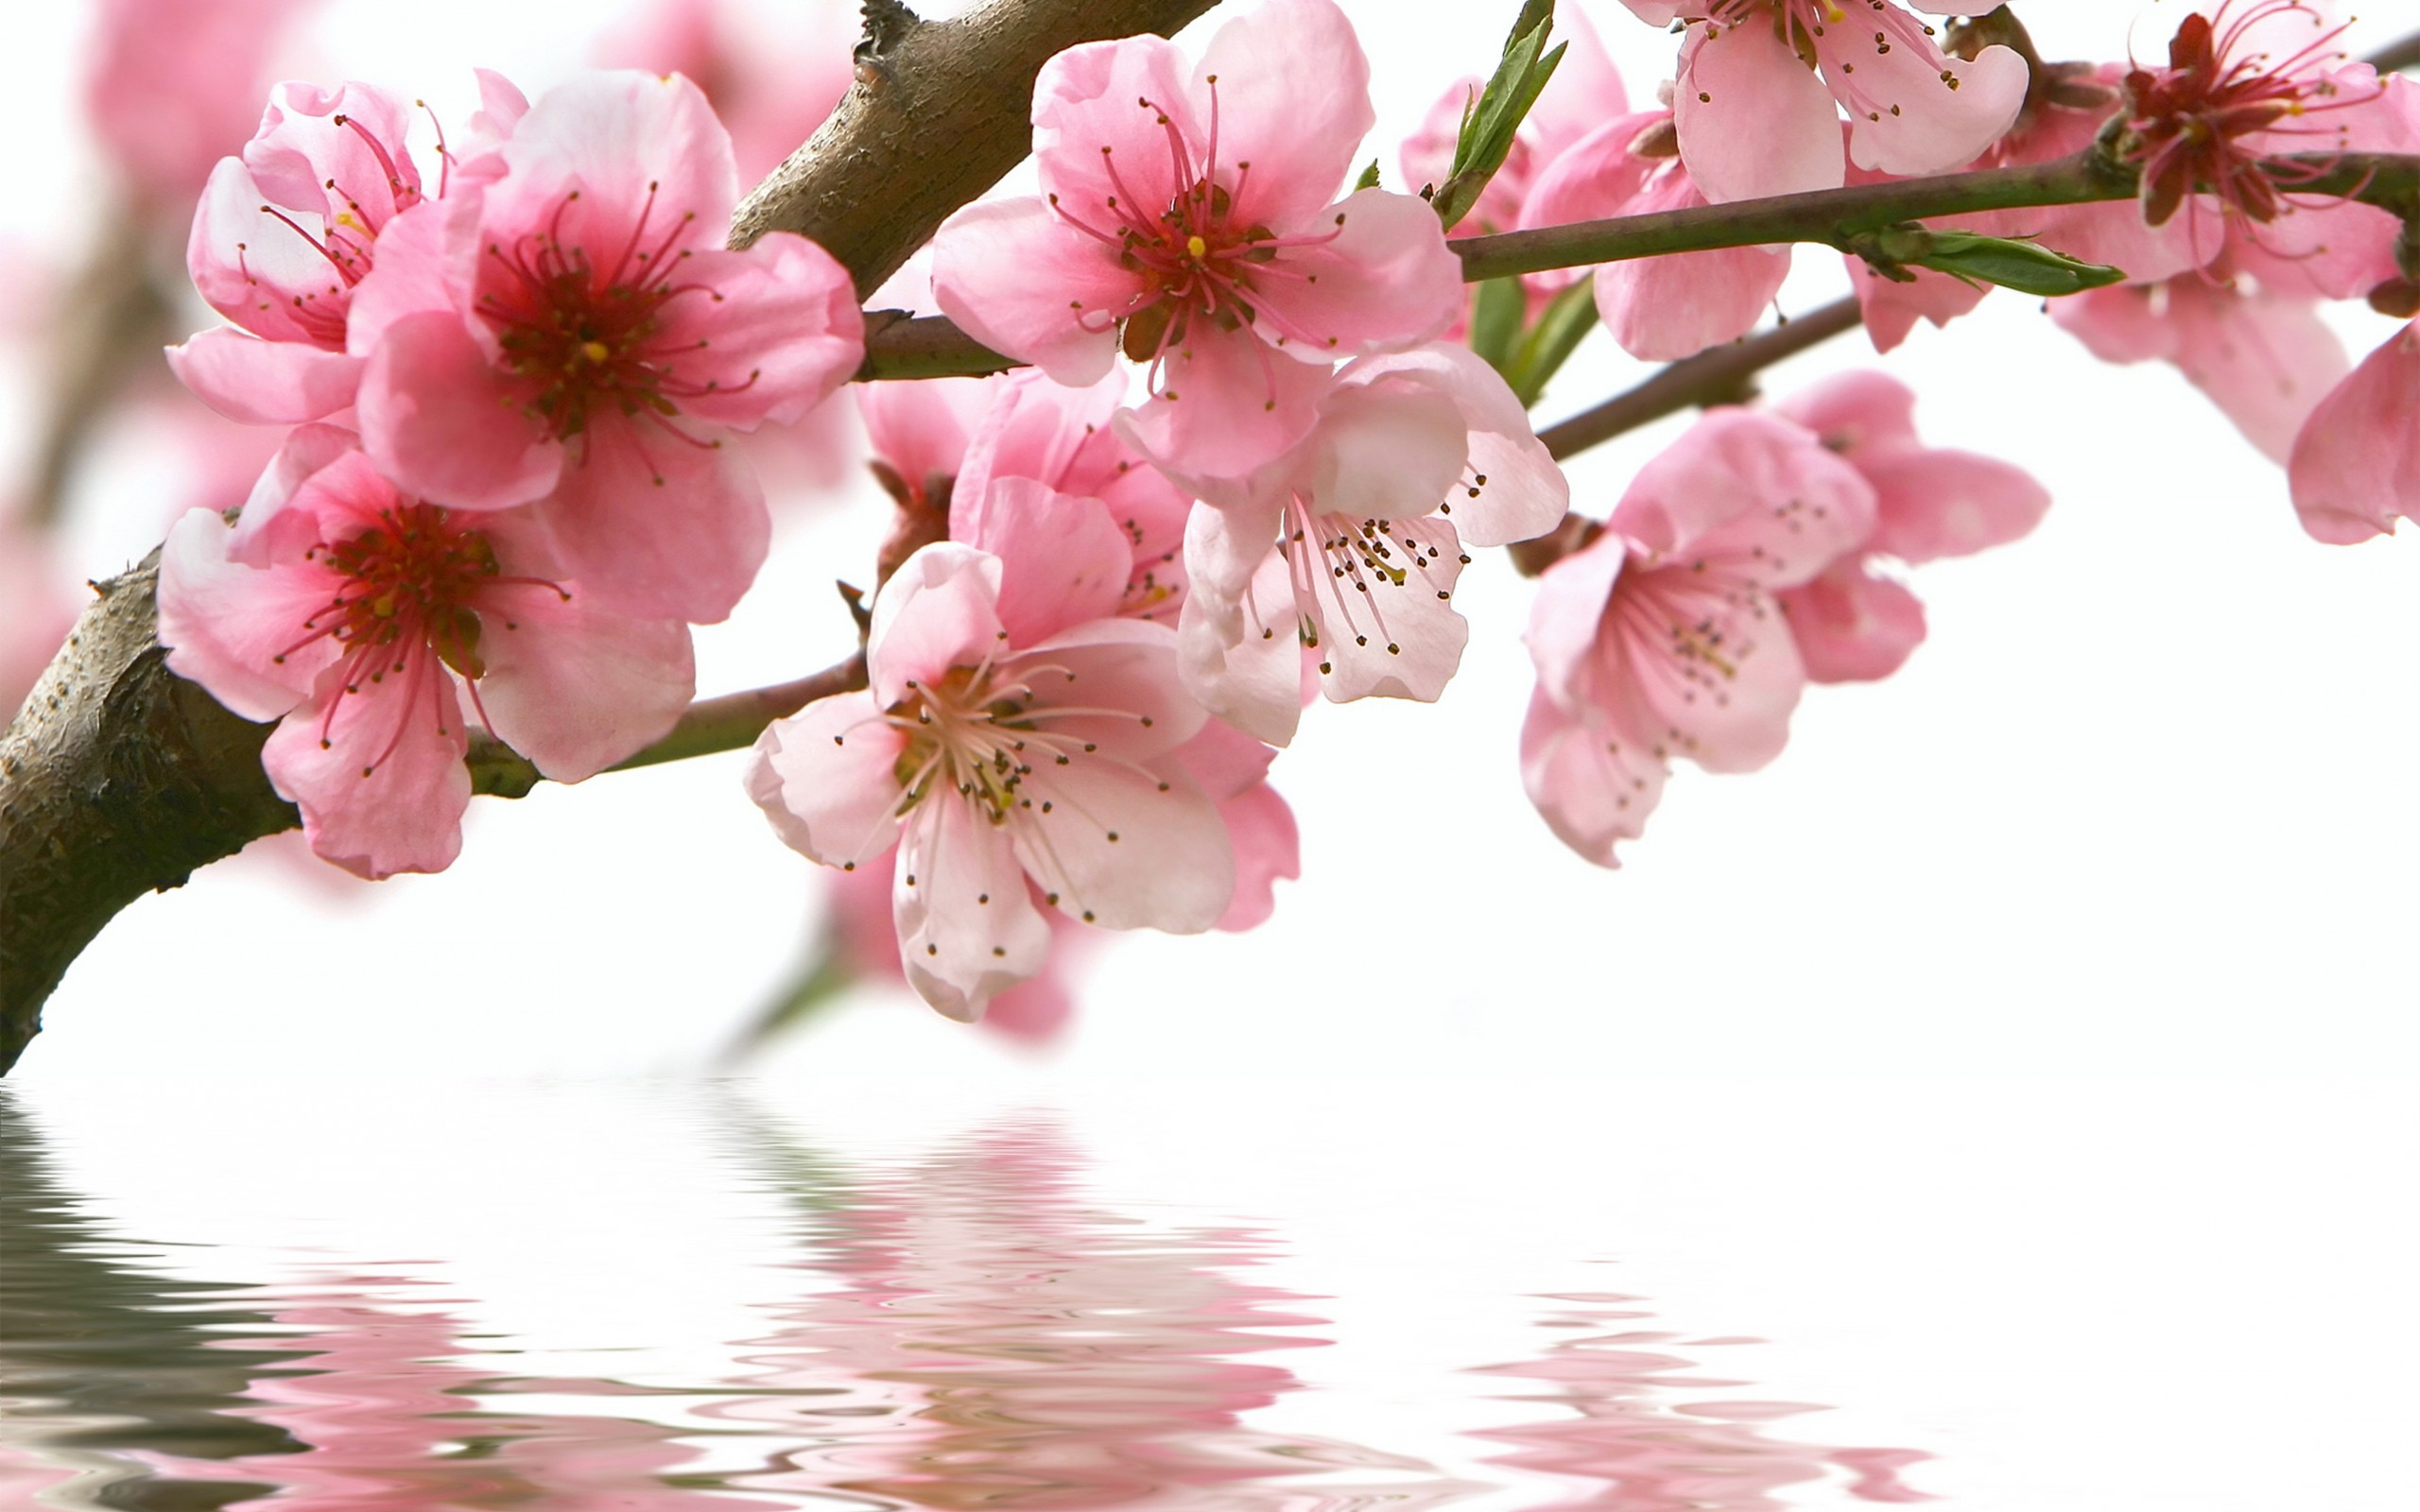 Spring Flowers Fotolip Rich Image And Wallpaper